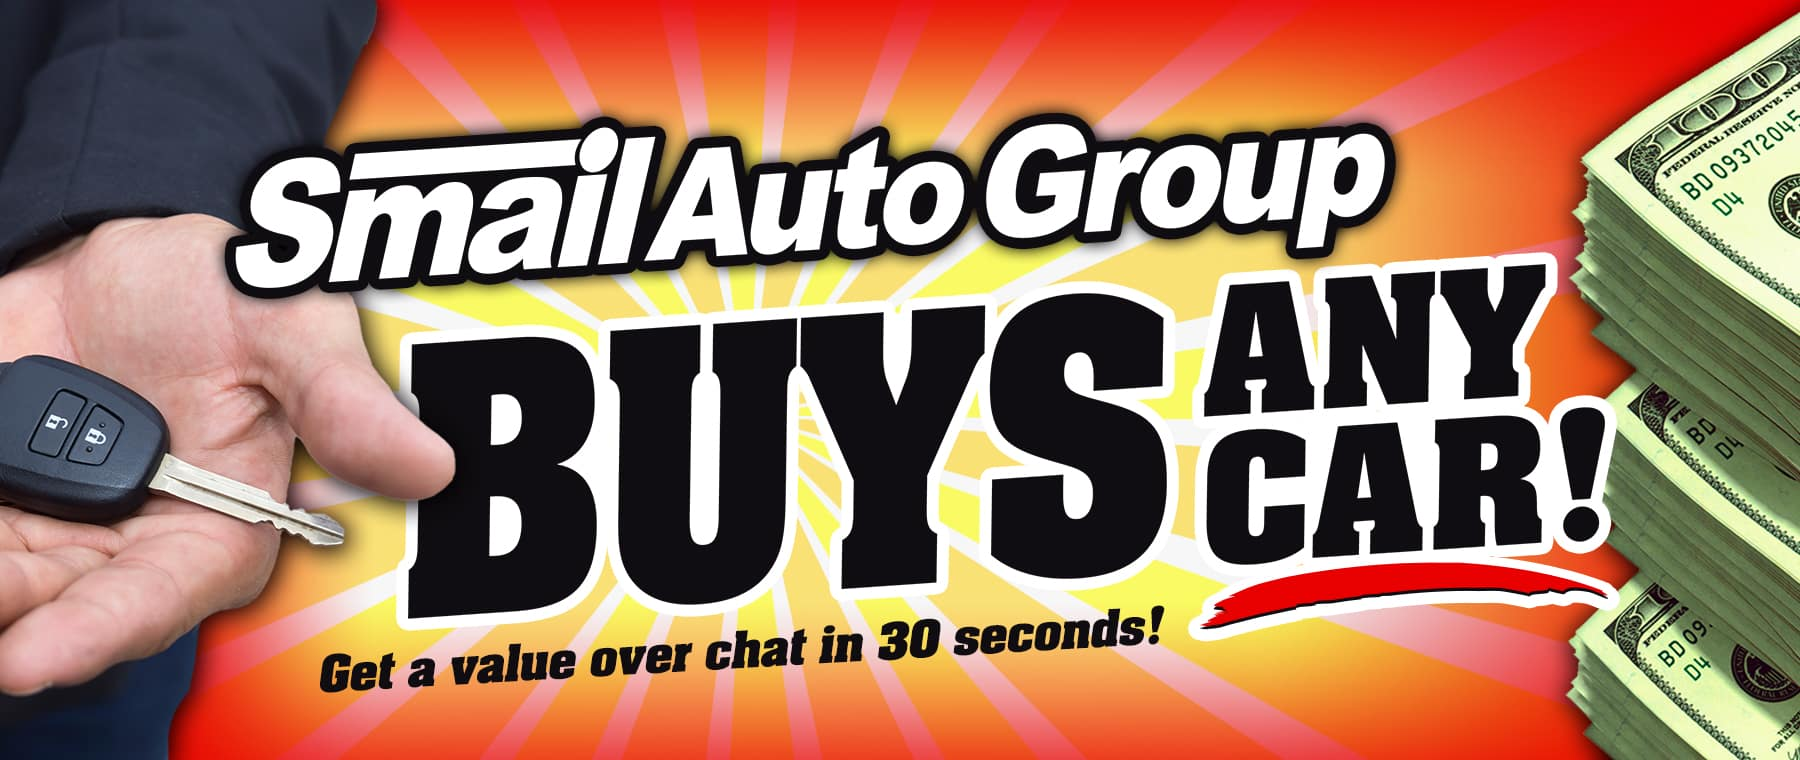 Smail Buys any car, truck or SUV!